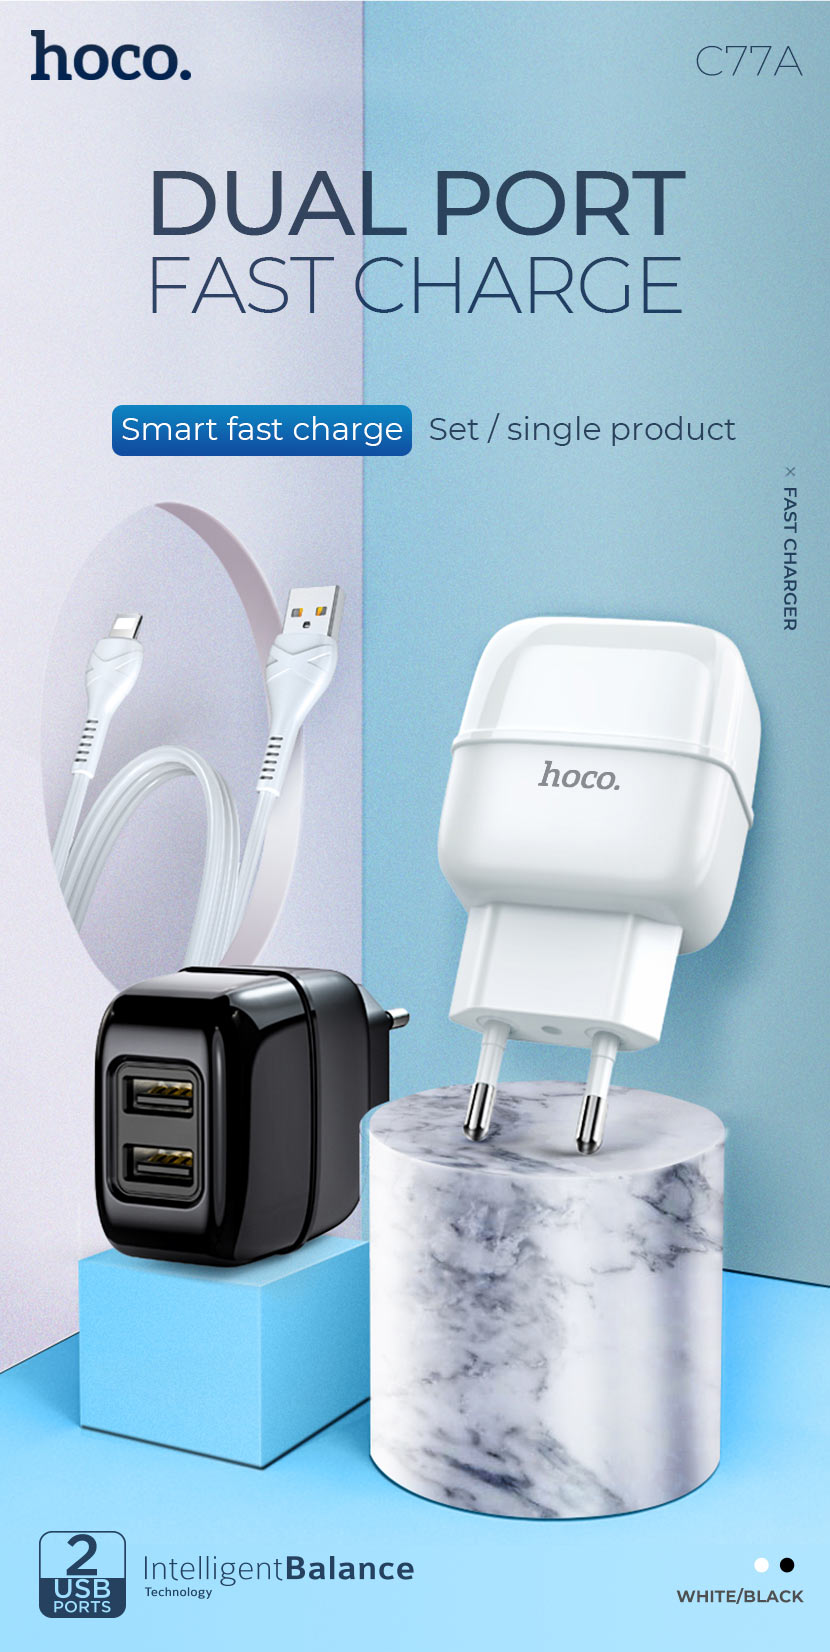 hoco news c77a highway dual port charger fast en